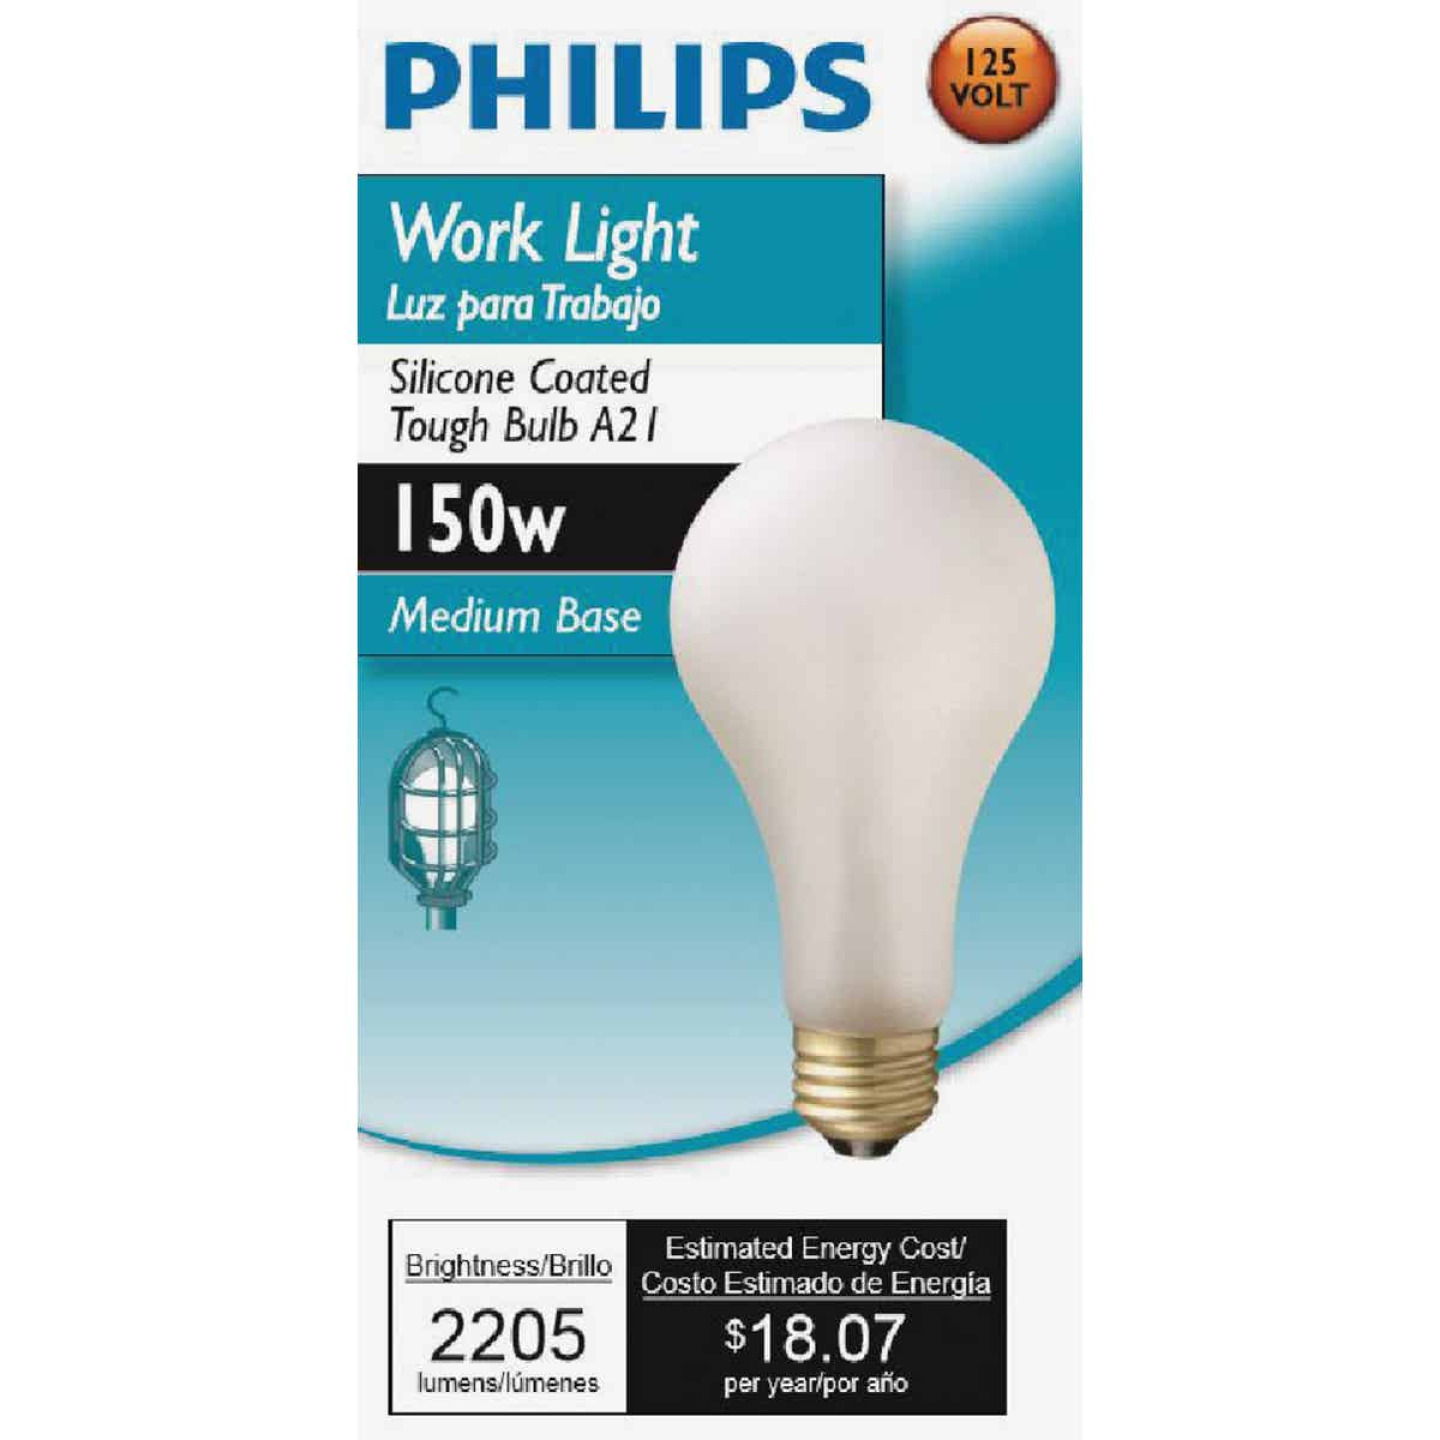 Philips 150W Frosted Medium Soft White A21 Incandescent Rough Service Light Bulb Image 2